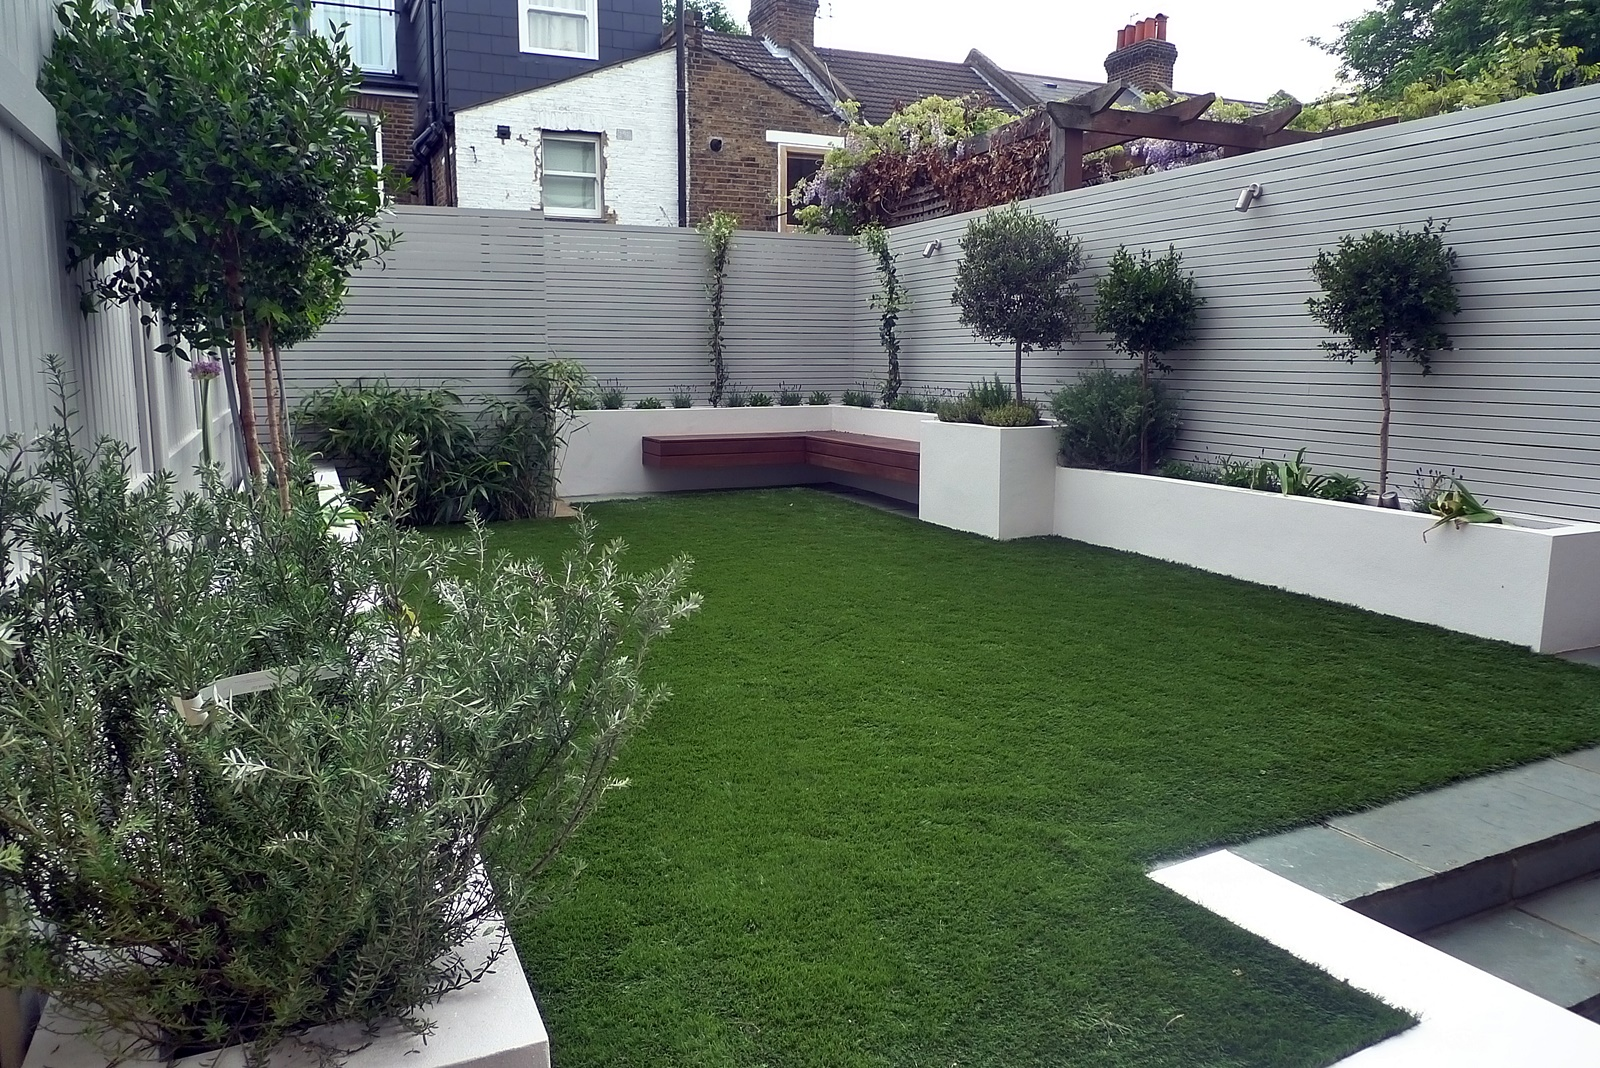 London garden blog london garden blog gardens from for Backyard landscape design ideas